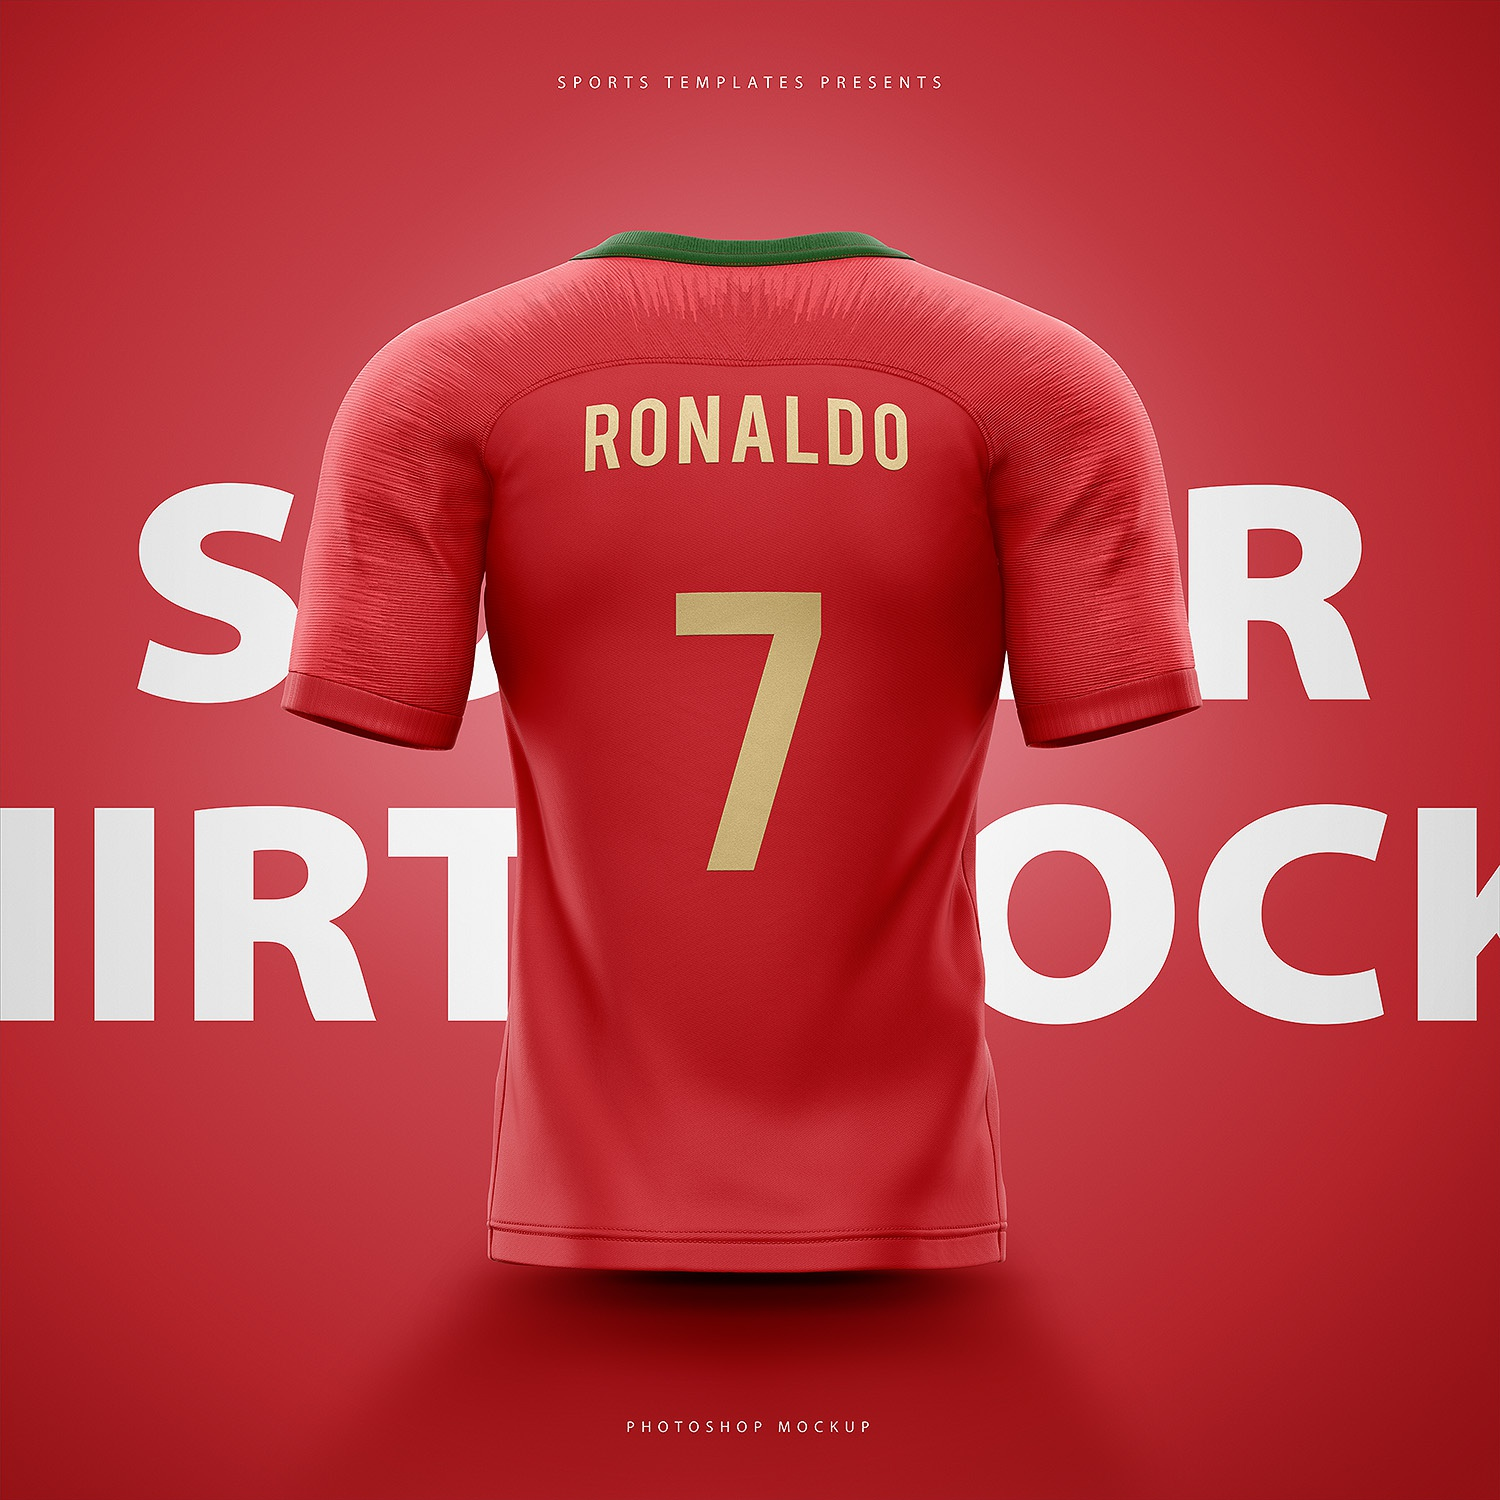 Portugal soccer football world cup 2018 shirt nike aeroswift photoshop  template back ab40b0eb0